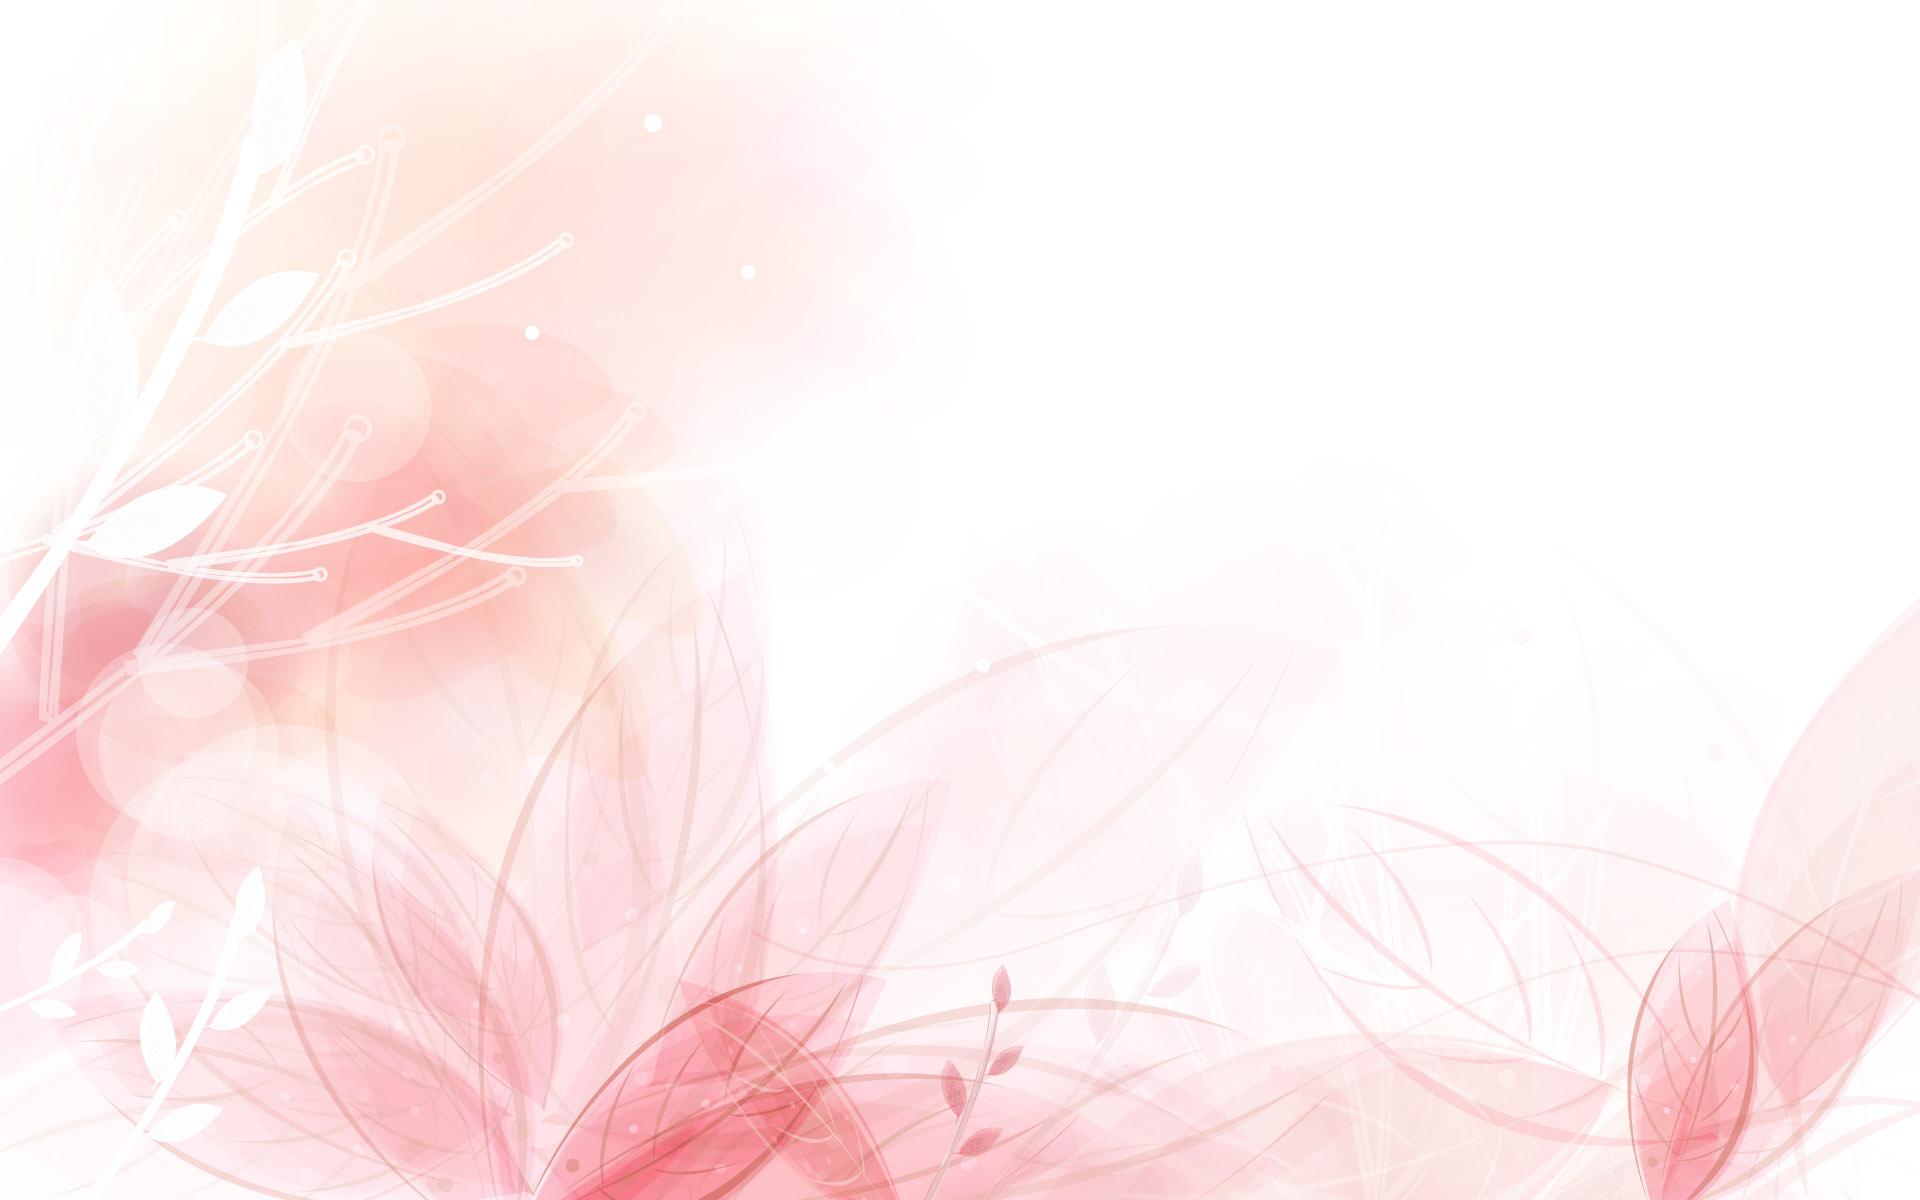 Pink flowers background 13 free wallpaper hdflowerwallpaper pink flowers background hd wallpaper mightylinksfo